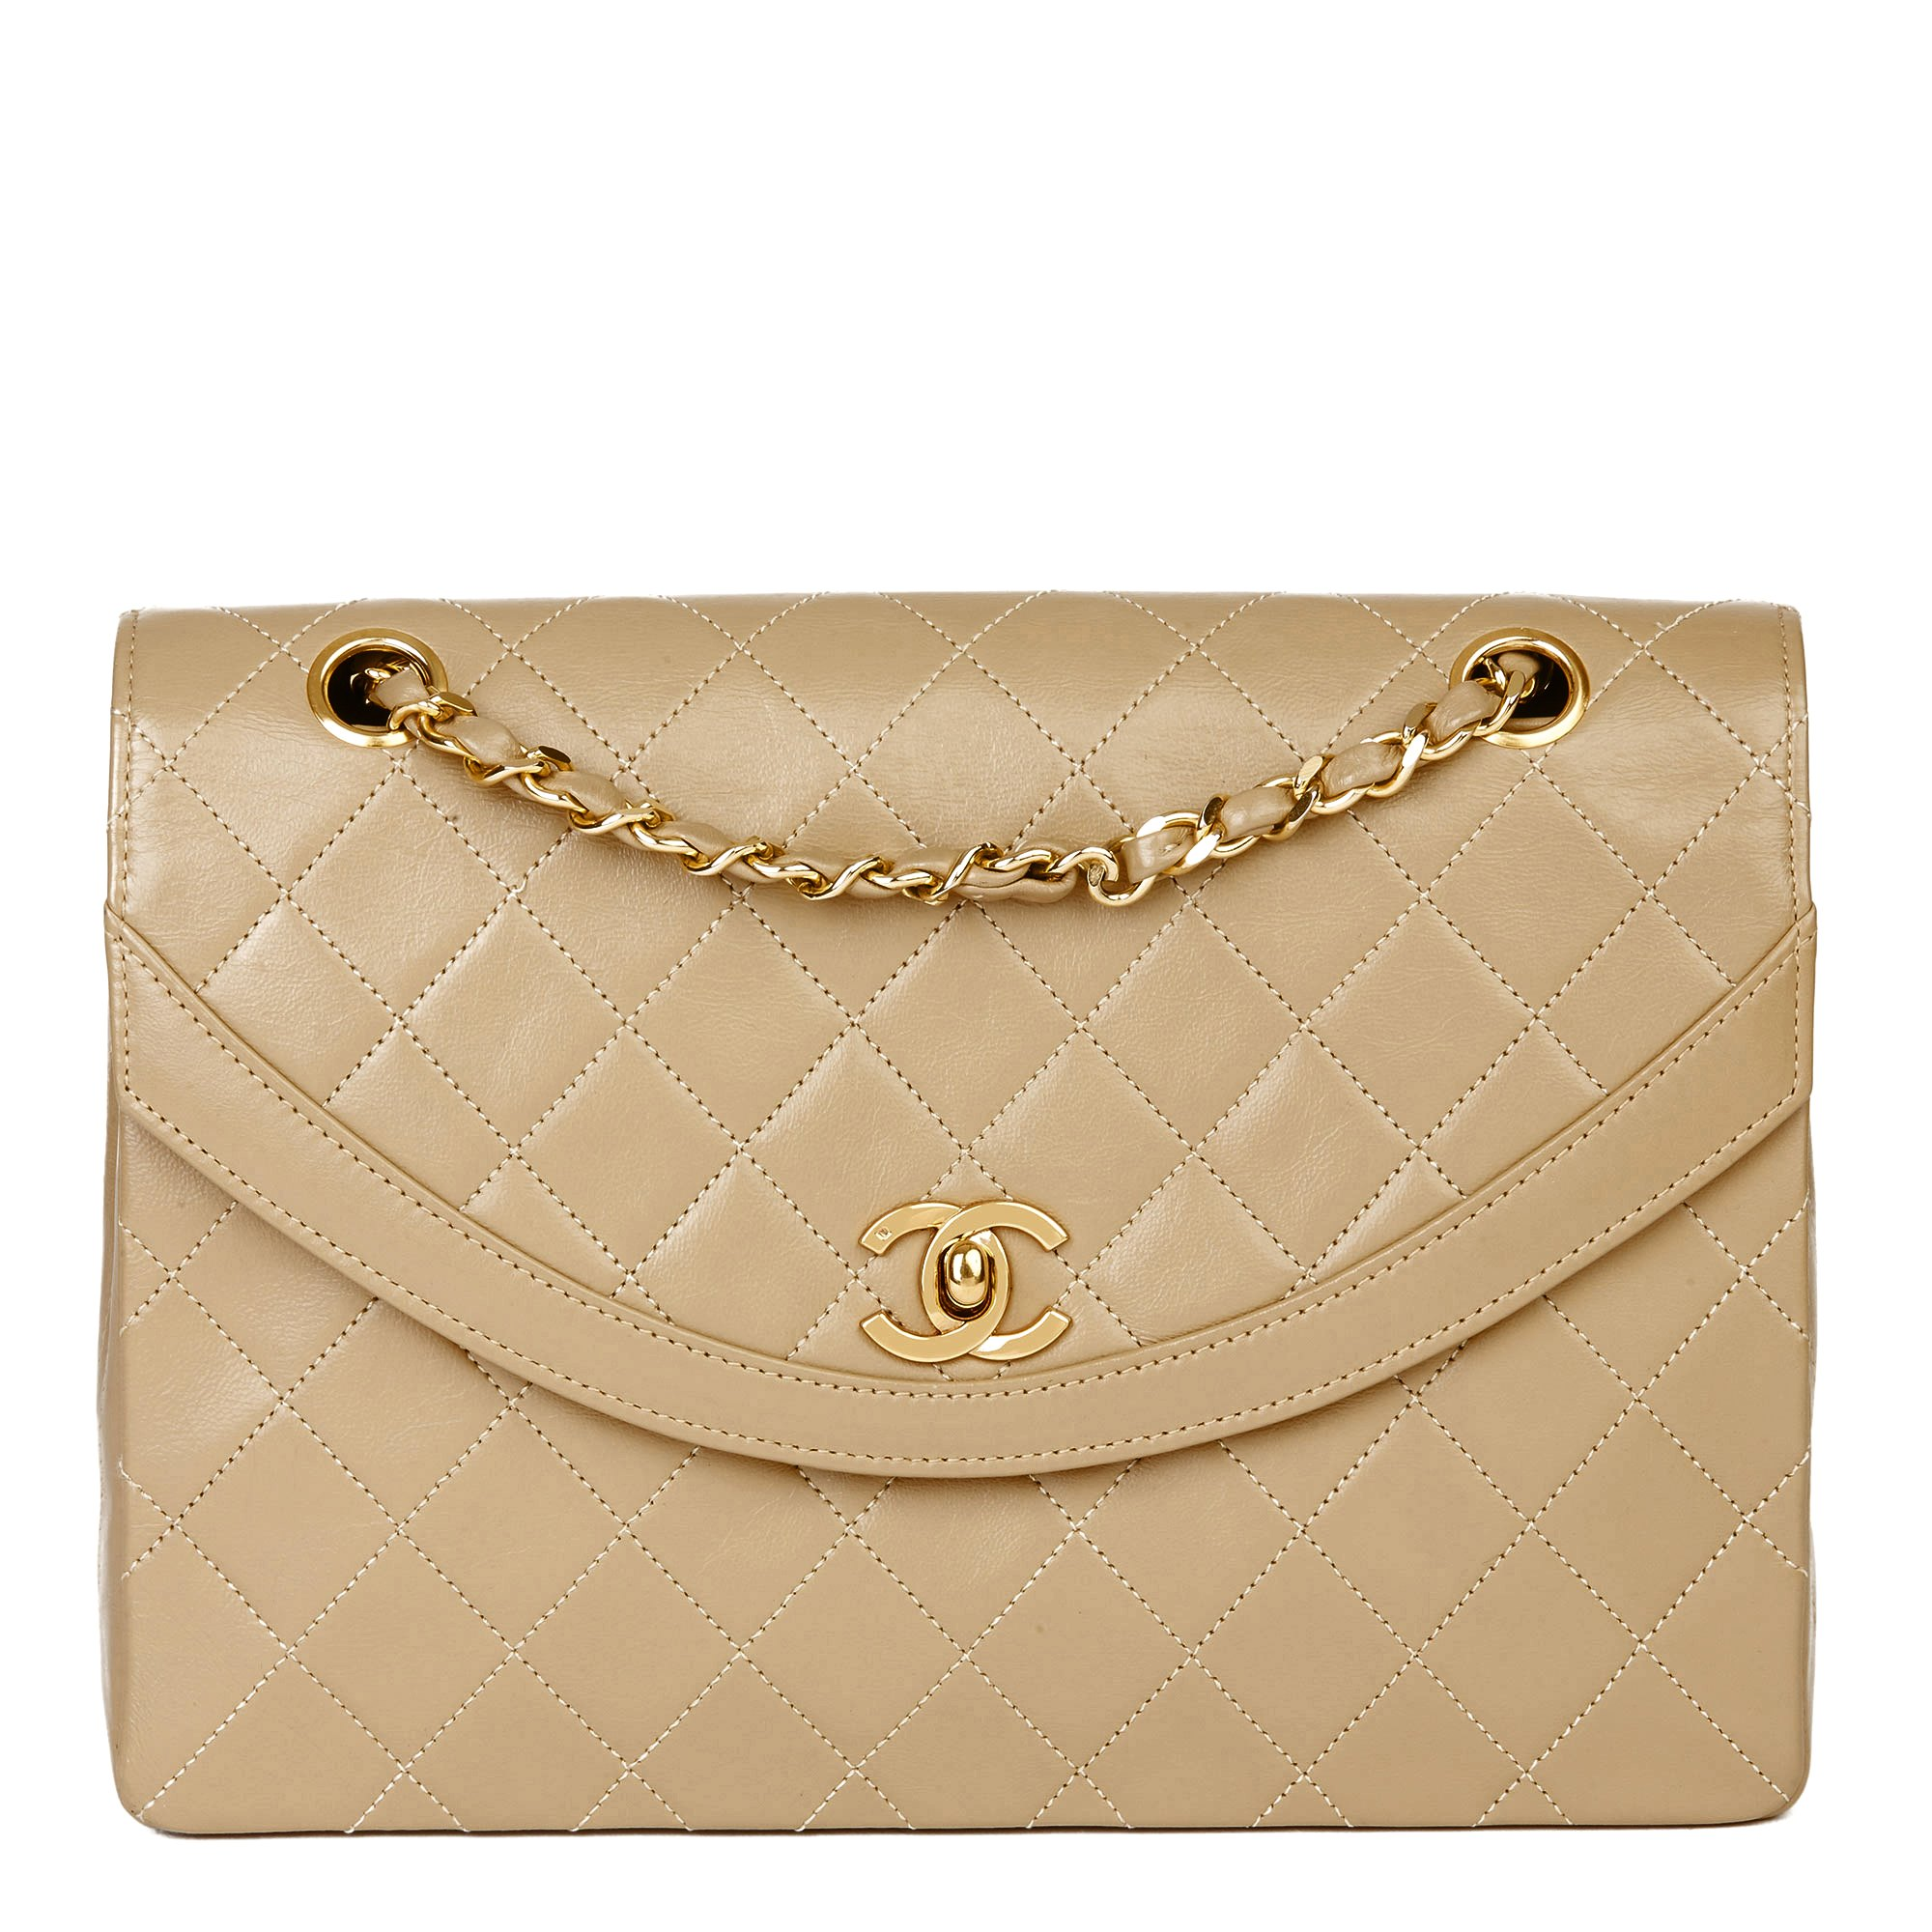 Chanel Dark Beige Quilted Lambskin Vintage Classic Single Flap Bag